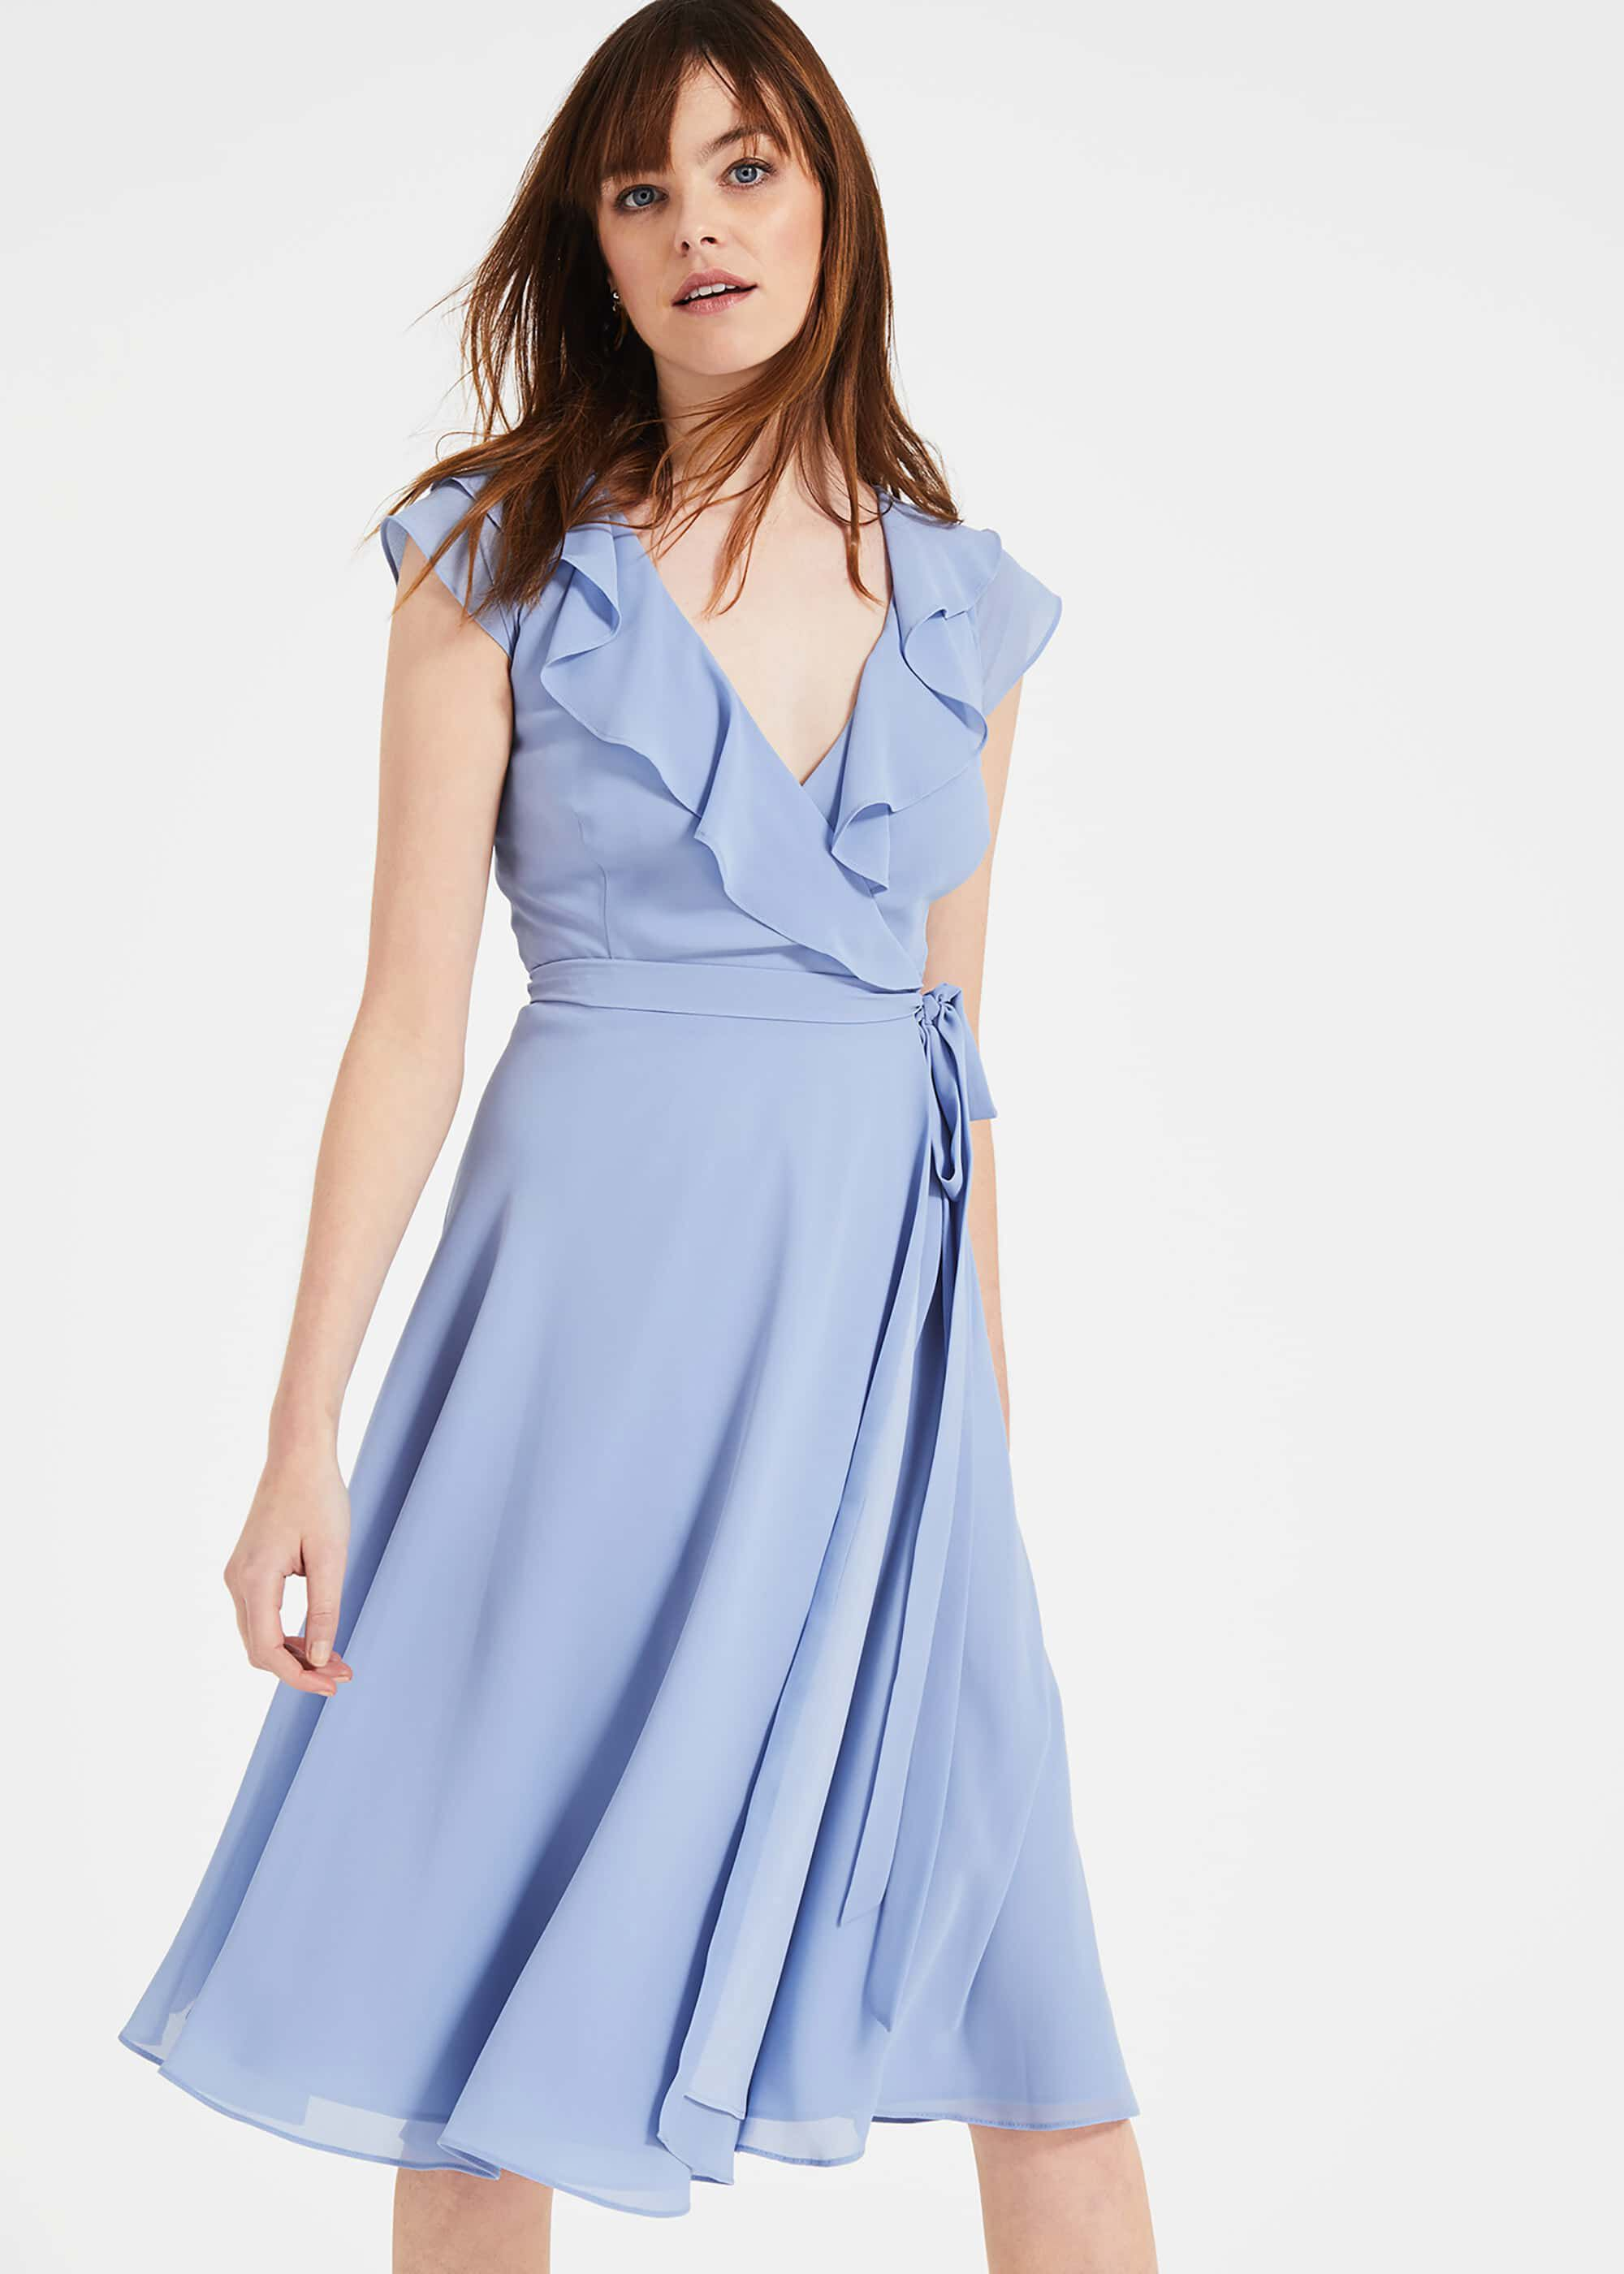 Phase Eight Allegra Wrap Dress, Blue, Fit & Flare, Occasion Dress